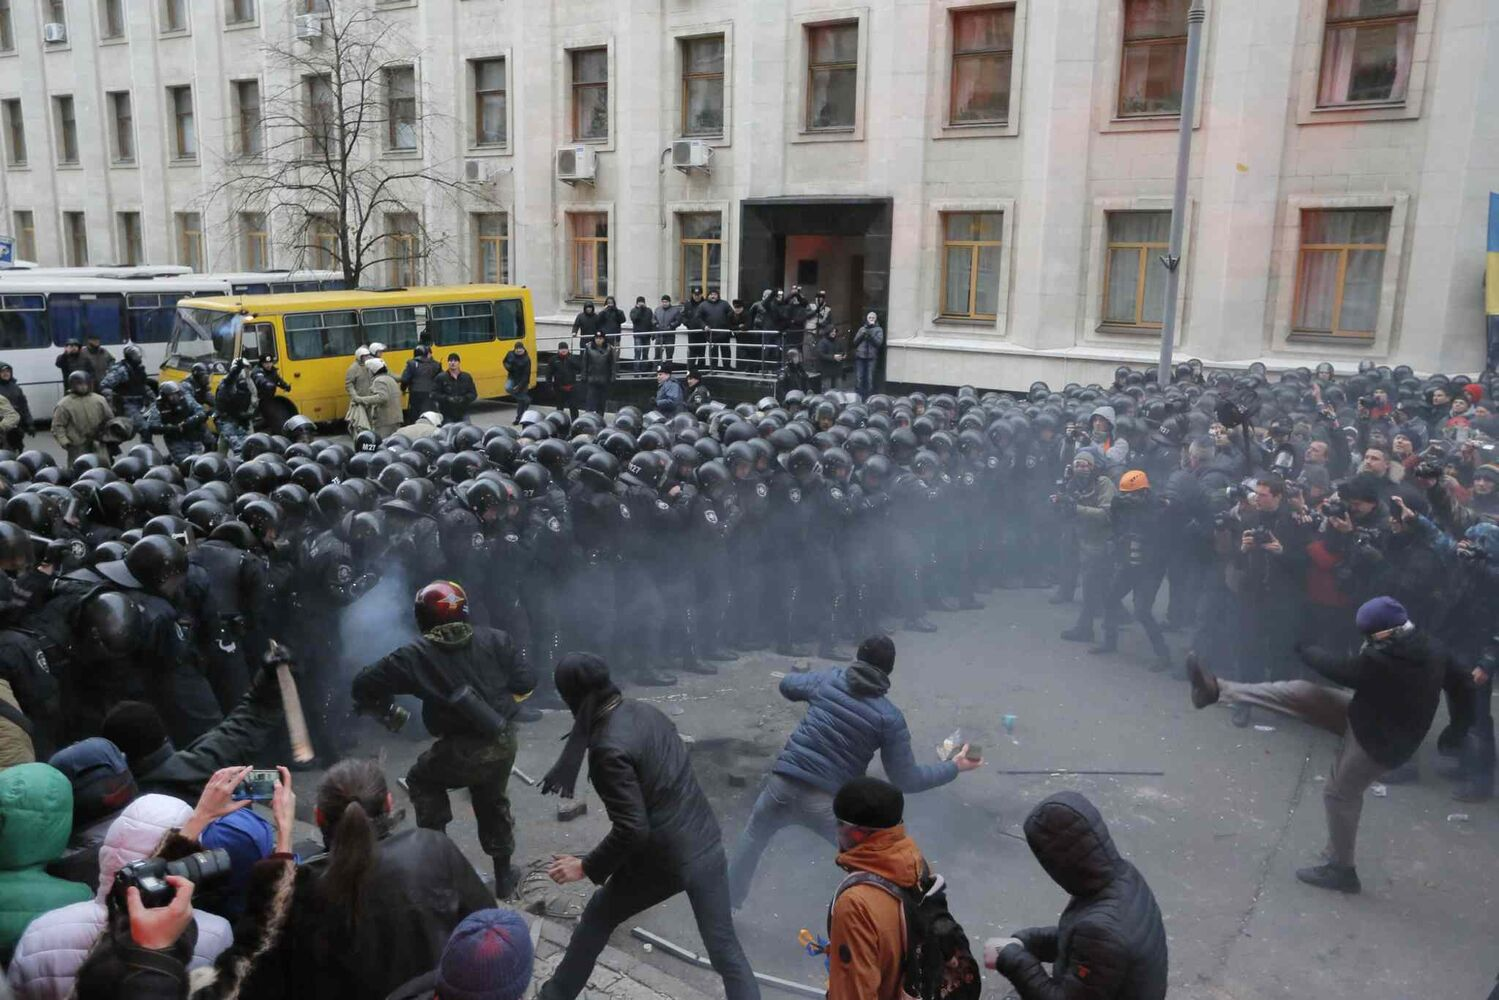 Protesters clash with police at the presidential office in Kiev, Ukraine, on Sunday, Dec. 1, 2013. As many as 100,000 demonstrators chased away police to rally in the center of Ukraine's capital on Sunday, defying a government ban on protests on Independence Square, in the biggest show of anger over the president's refusal to sign an agreement with the European Union.  (Efrem Lukatsky / The Associated Press)